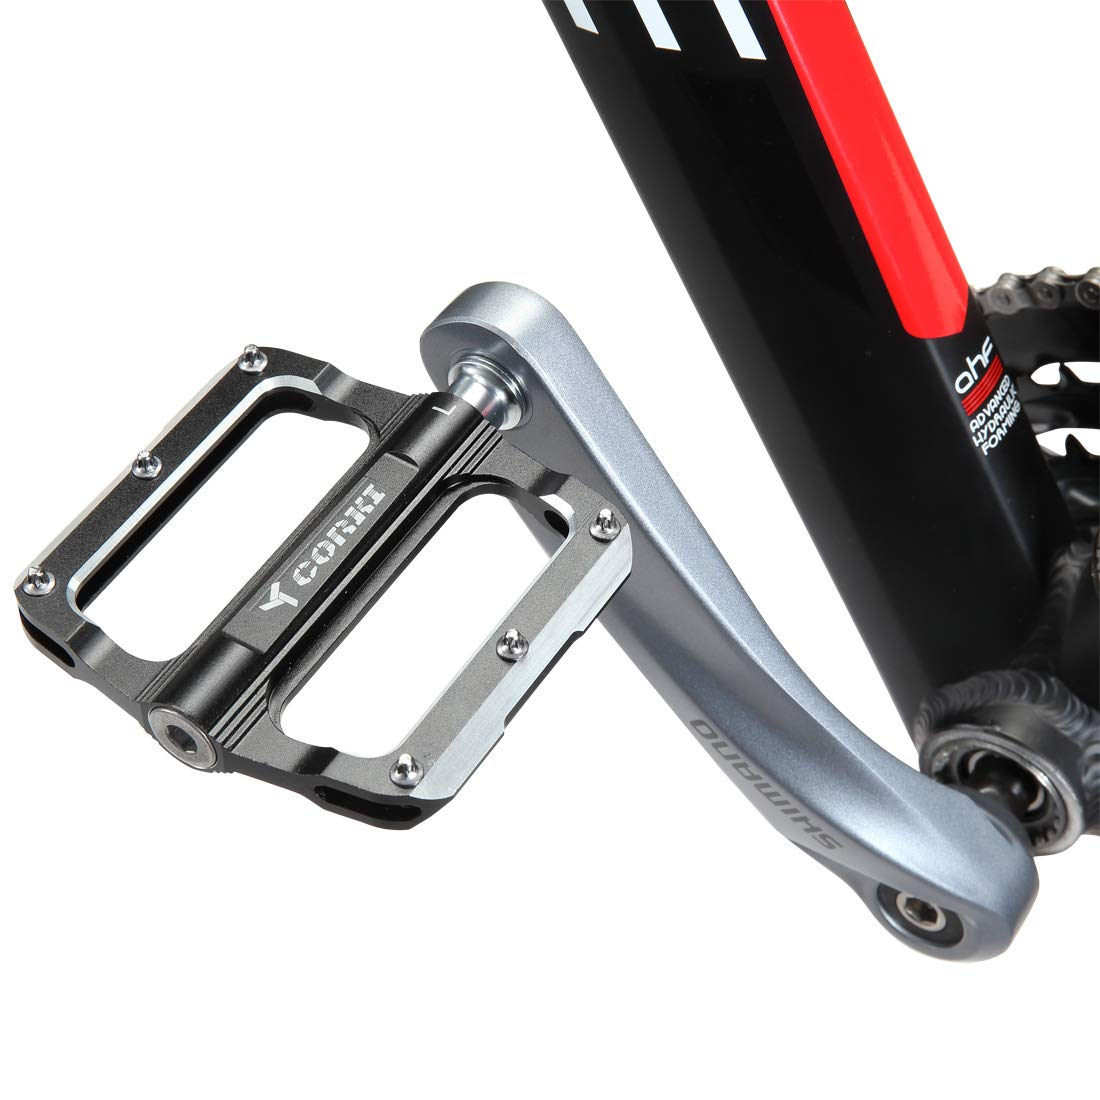 Aluminium Alloy Mountain Bike Road Bicycle MTB Pedal Lightweight Wide Flat